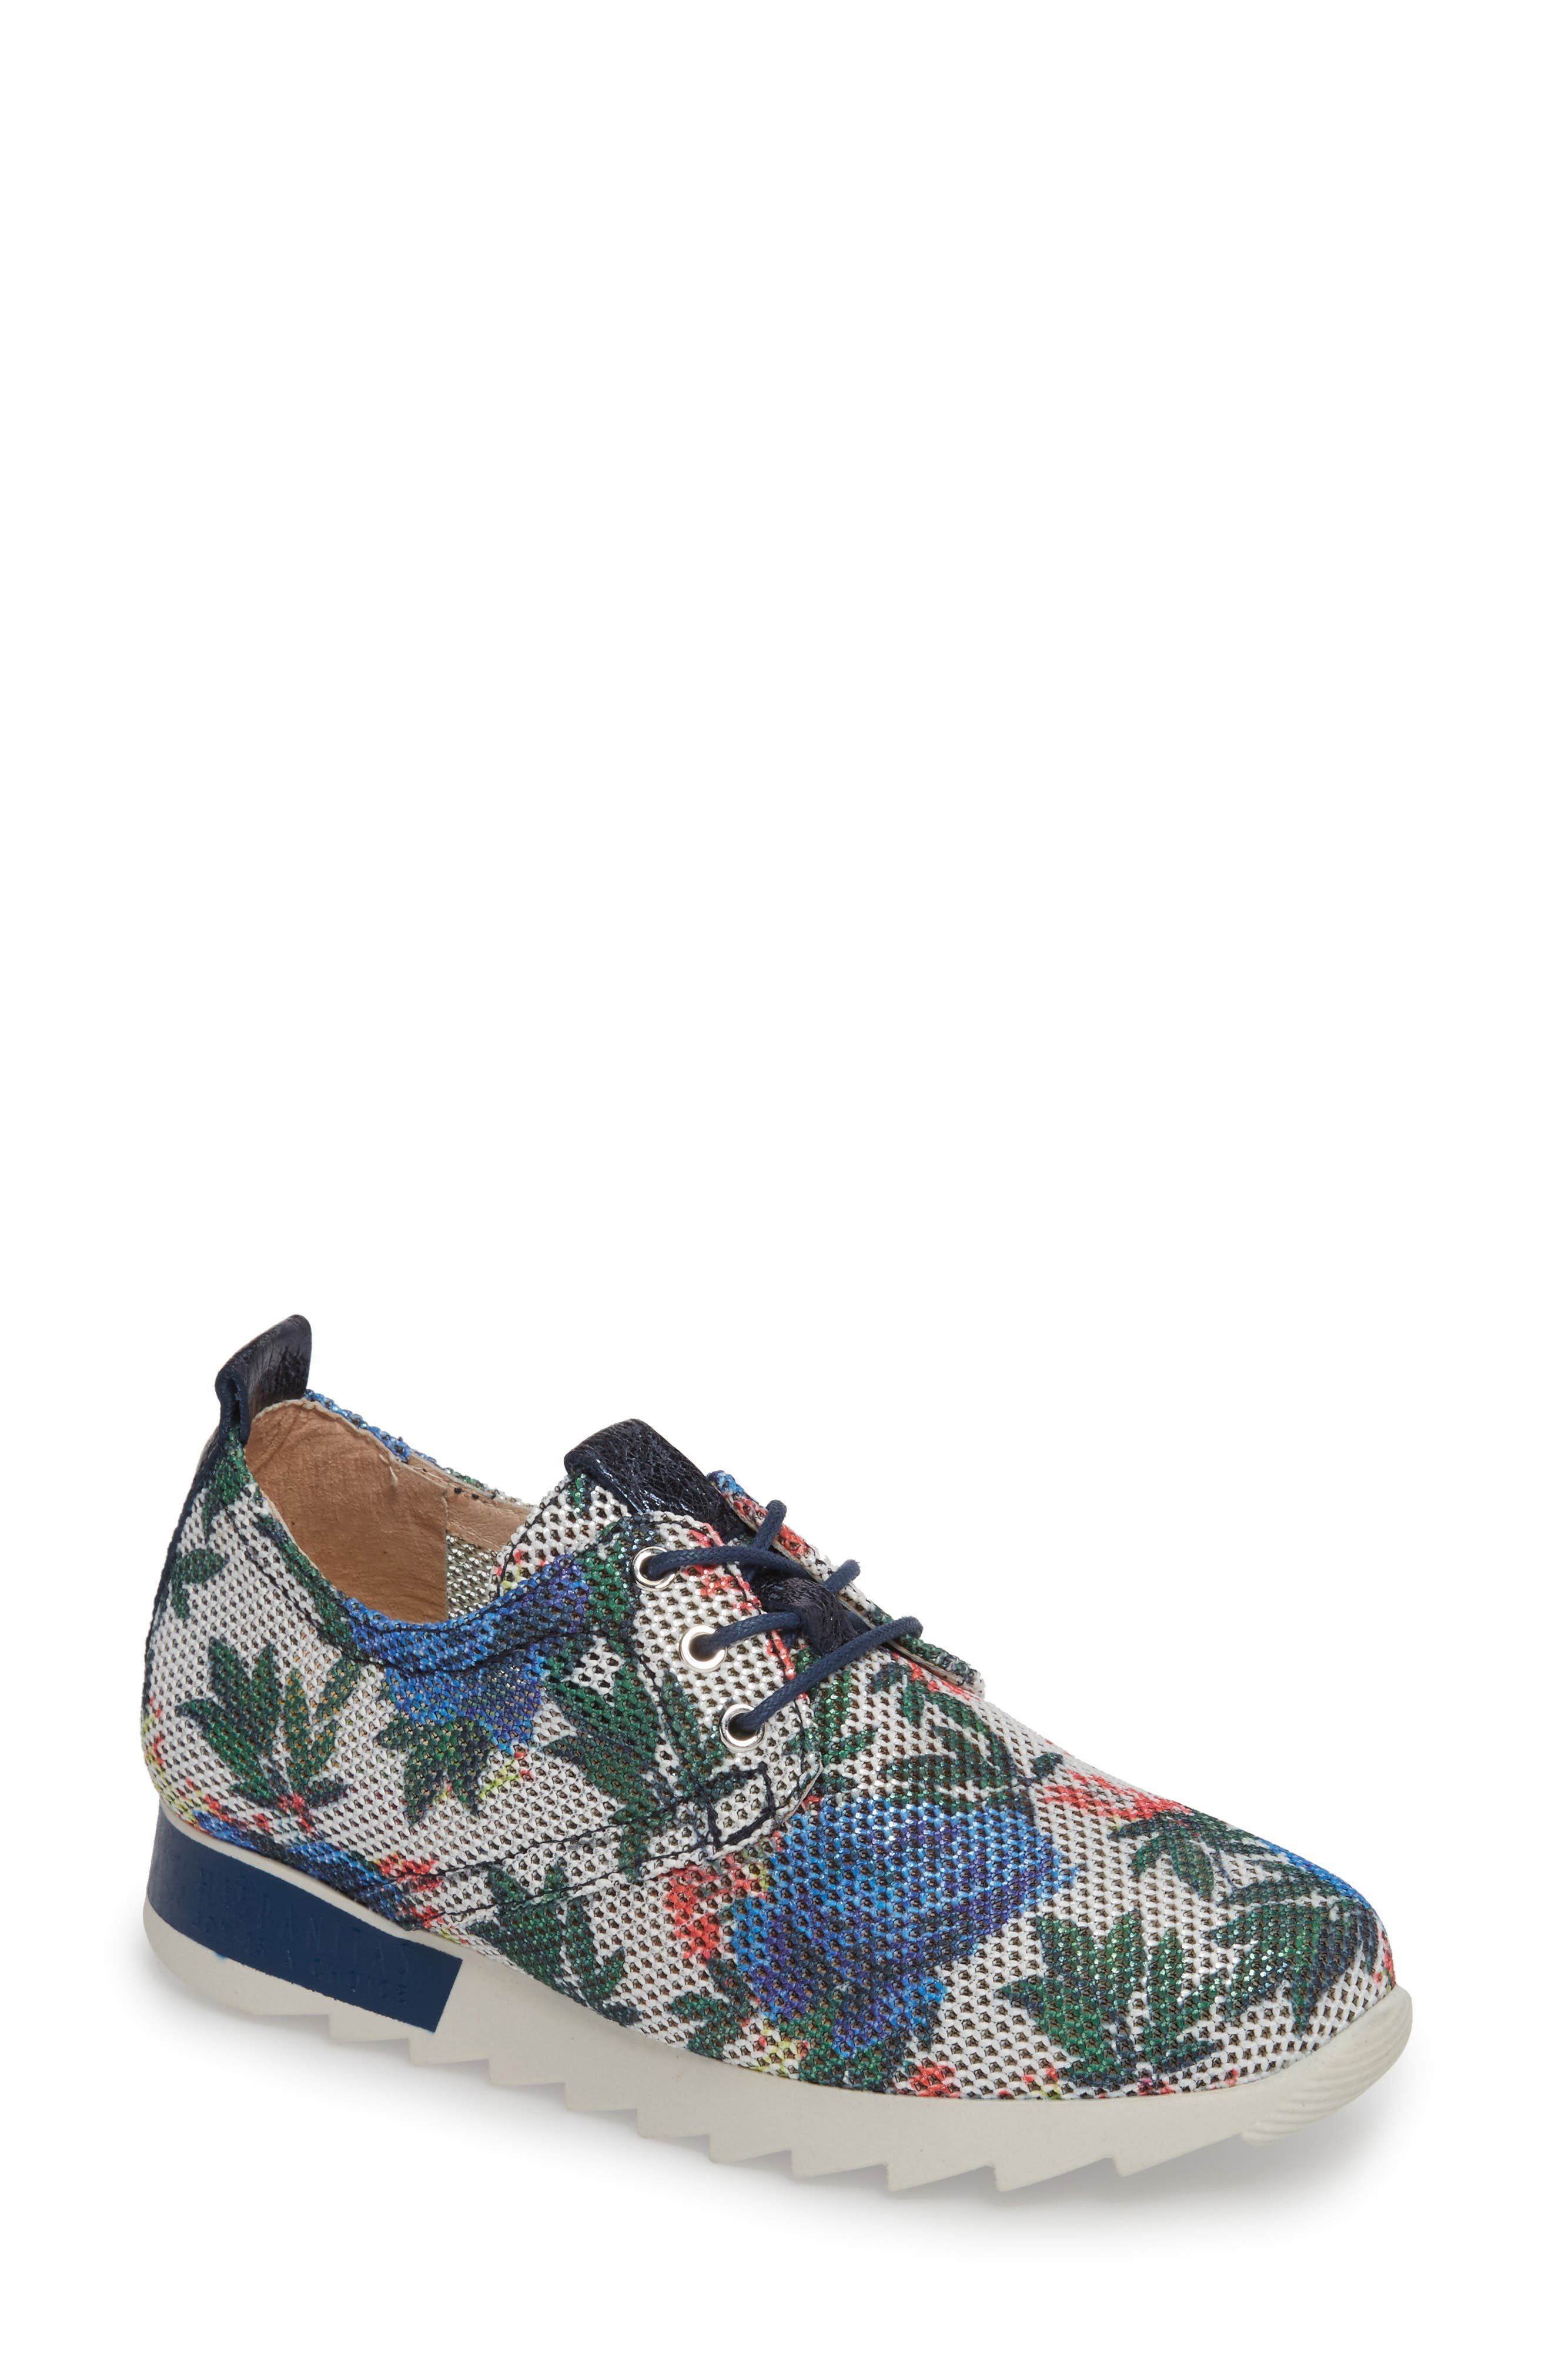 Breezi Perforated Sneaker,                             Main thumbnail 1, color,                             GINSEN LEATHER